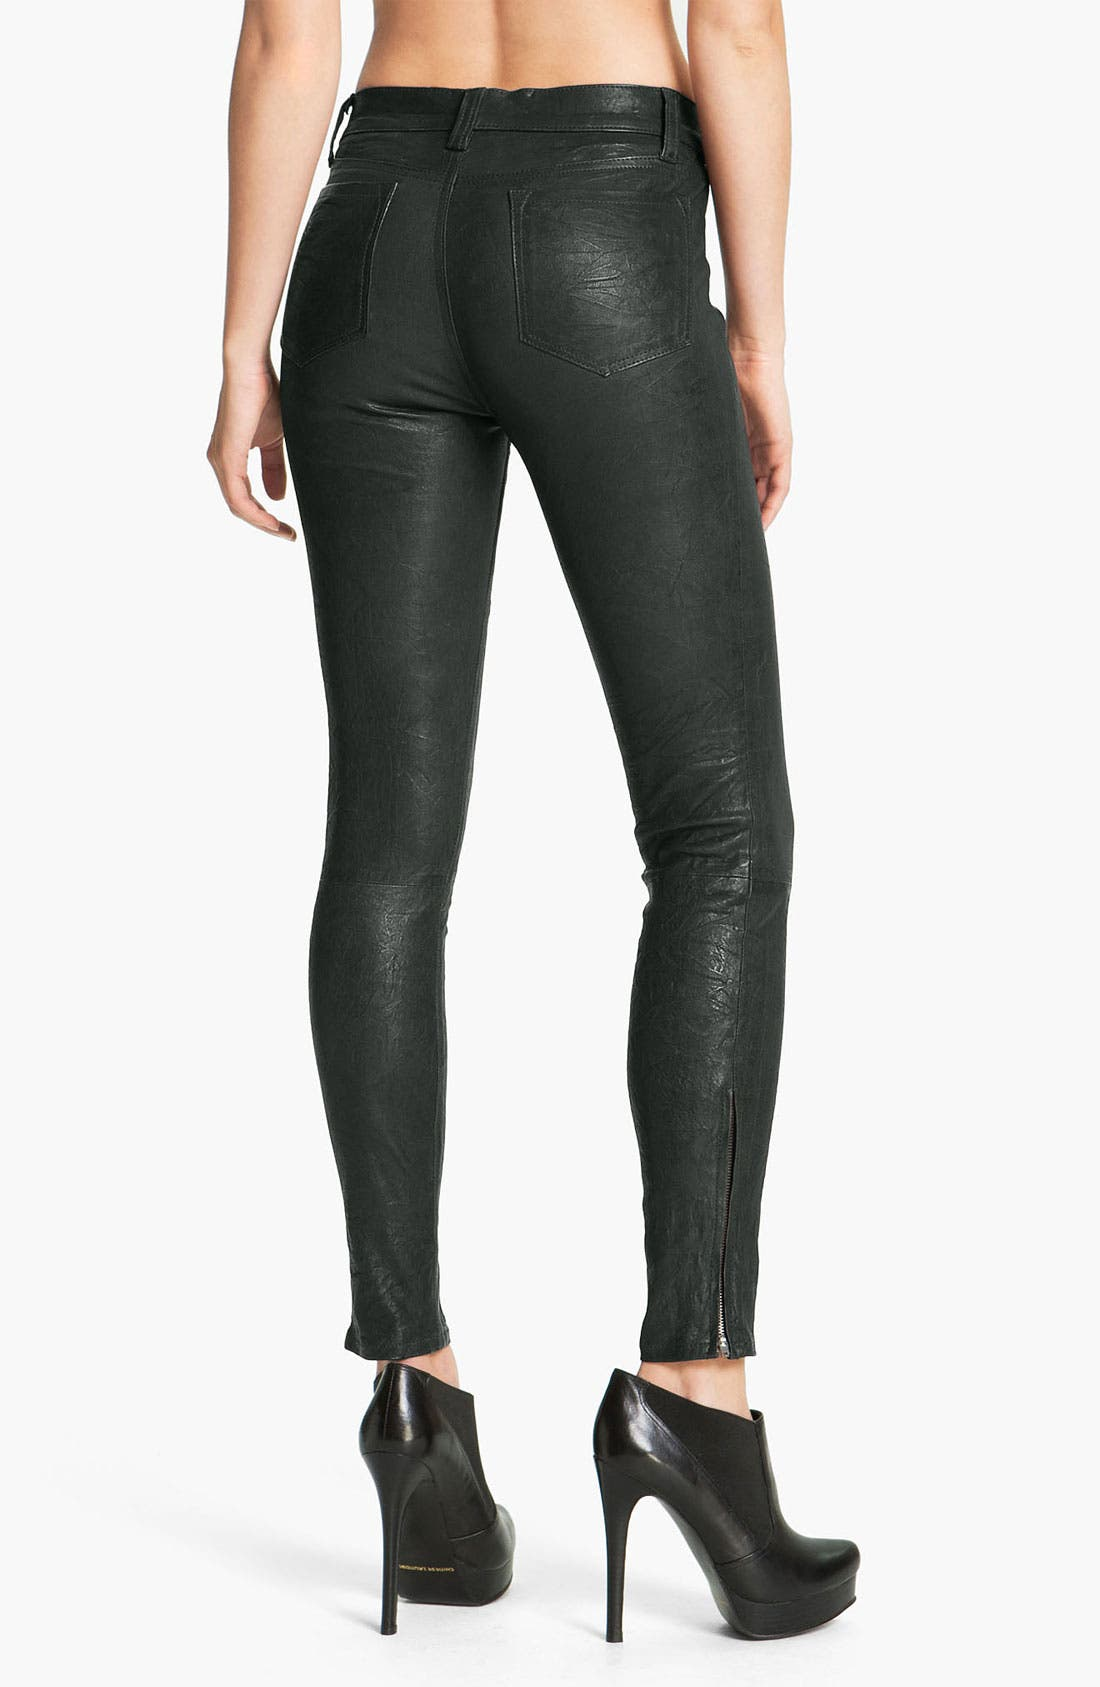 '8001' Lambskin Leather Pants,                             Alternate thumbnail 4, color,                             Forest